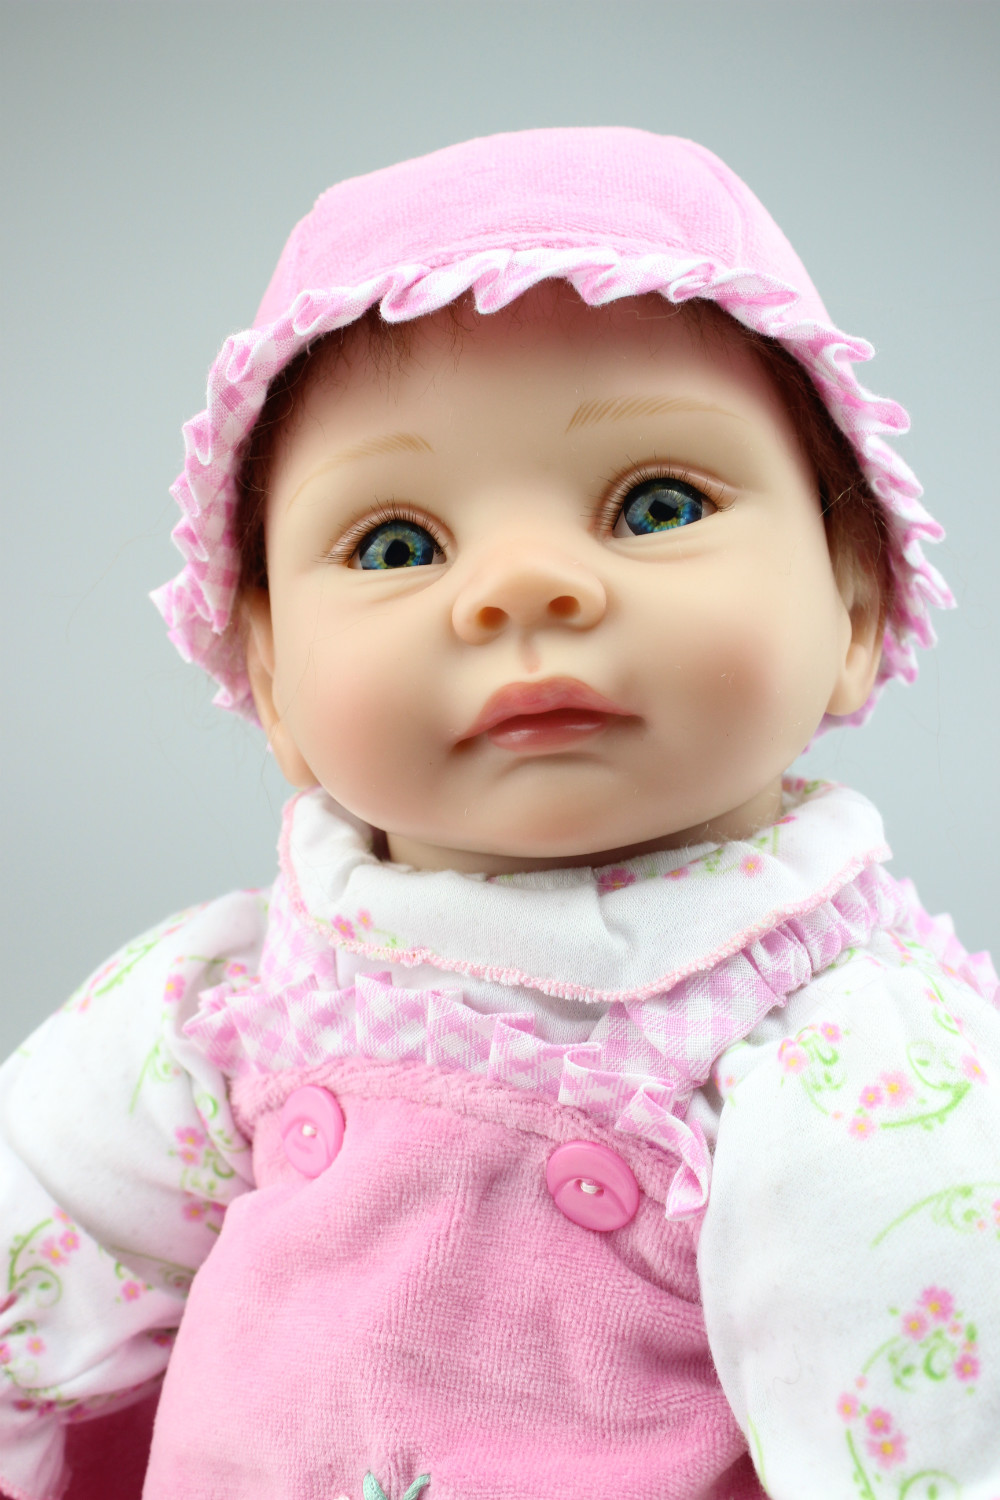 High Quality Babydoll Imported Mohair Doll Silicone Vinyl Toys Soft Cotton Body Children Birthday Present oasis mohair